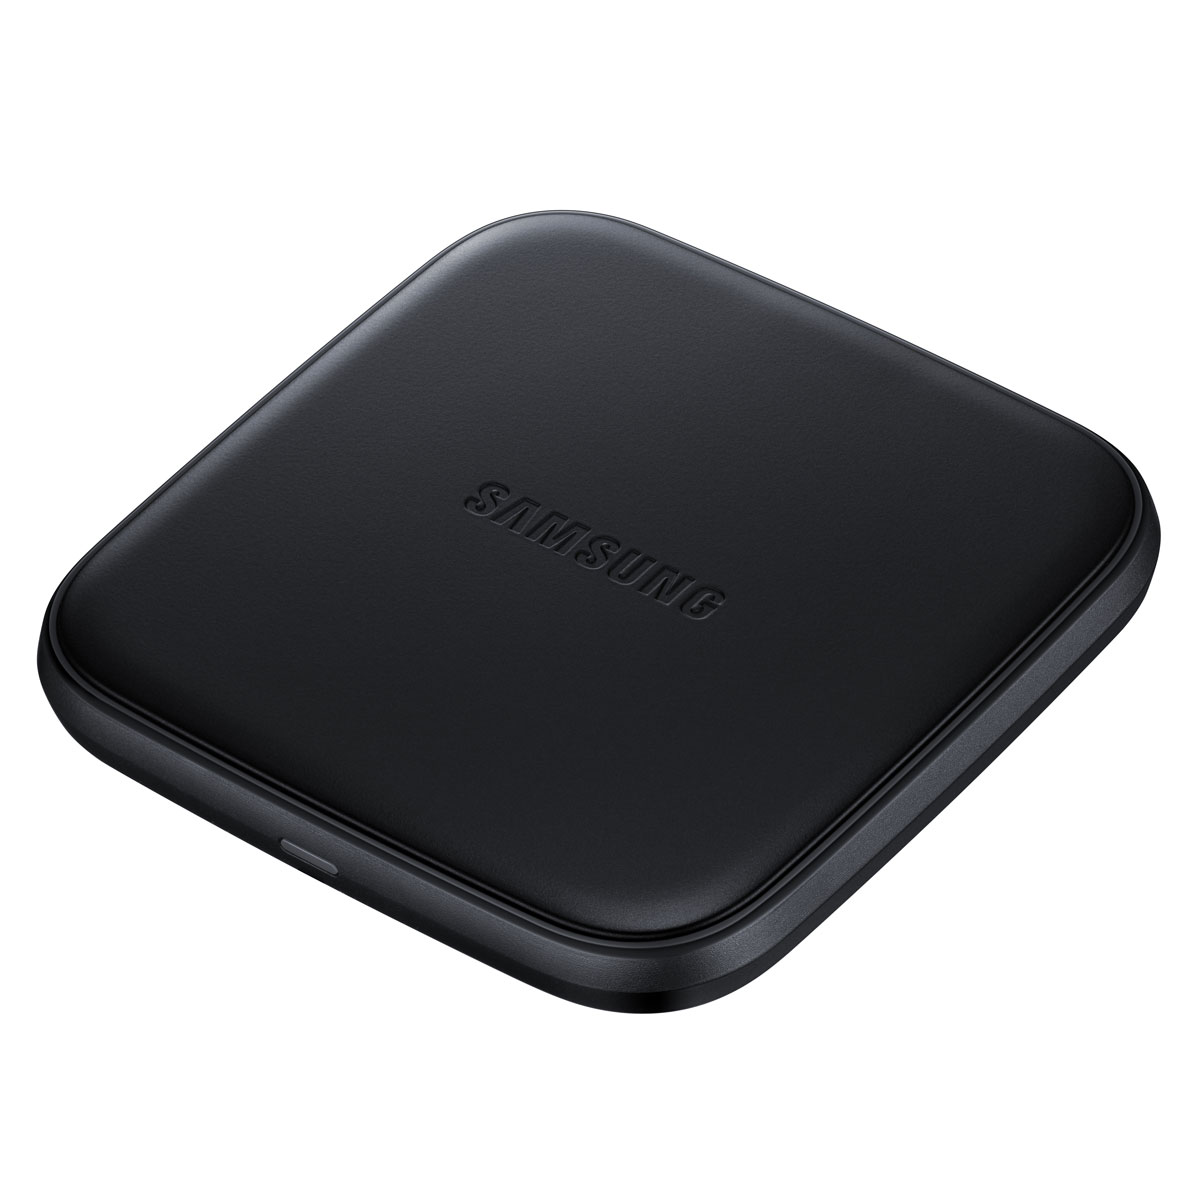 Sigle Pour Induction Samsung Mini Pad à Induction Ep-pa510b Noir - Chargeur